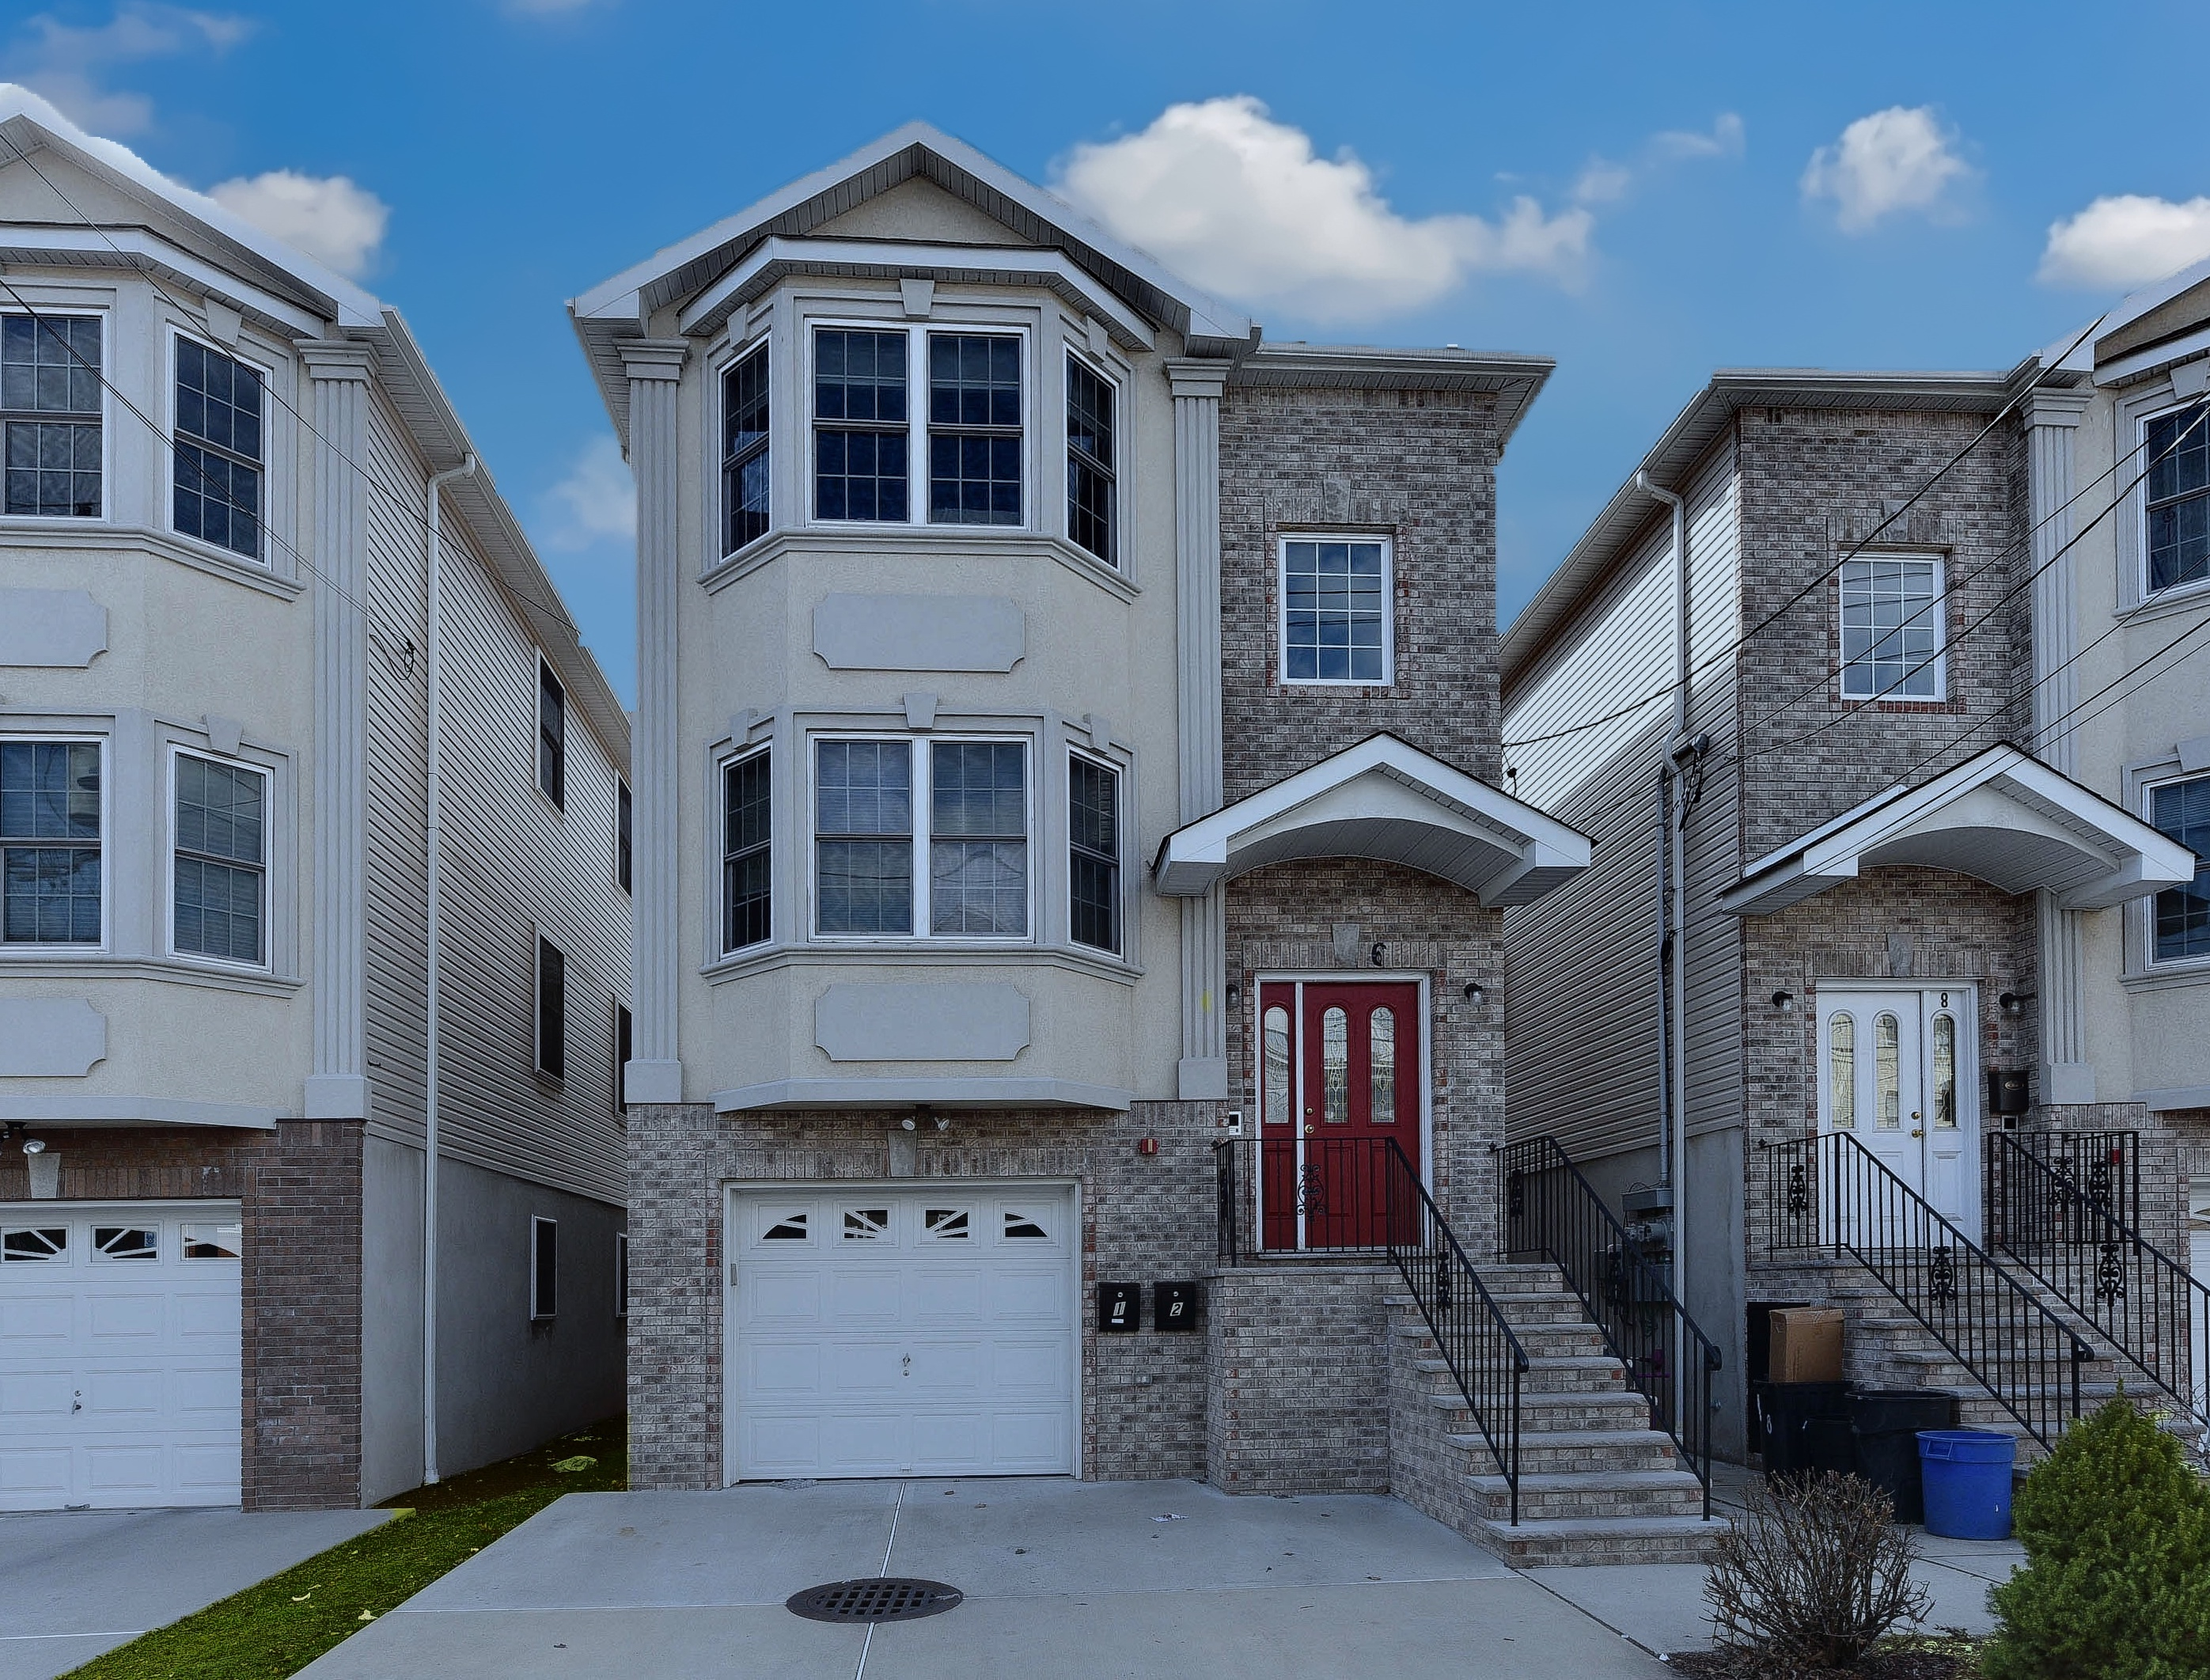 New Listing / 2 Family / Harrison, NJ - THE PINTO GROUP